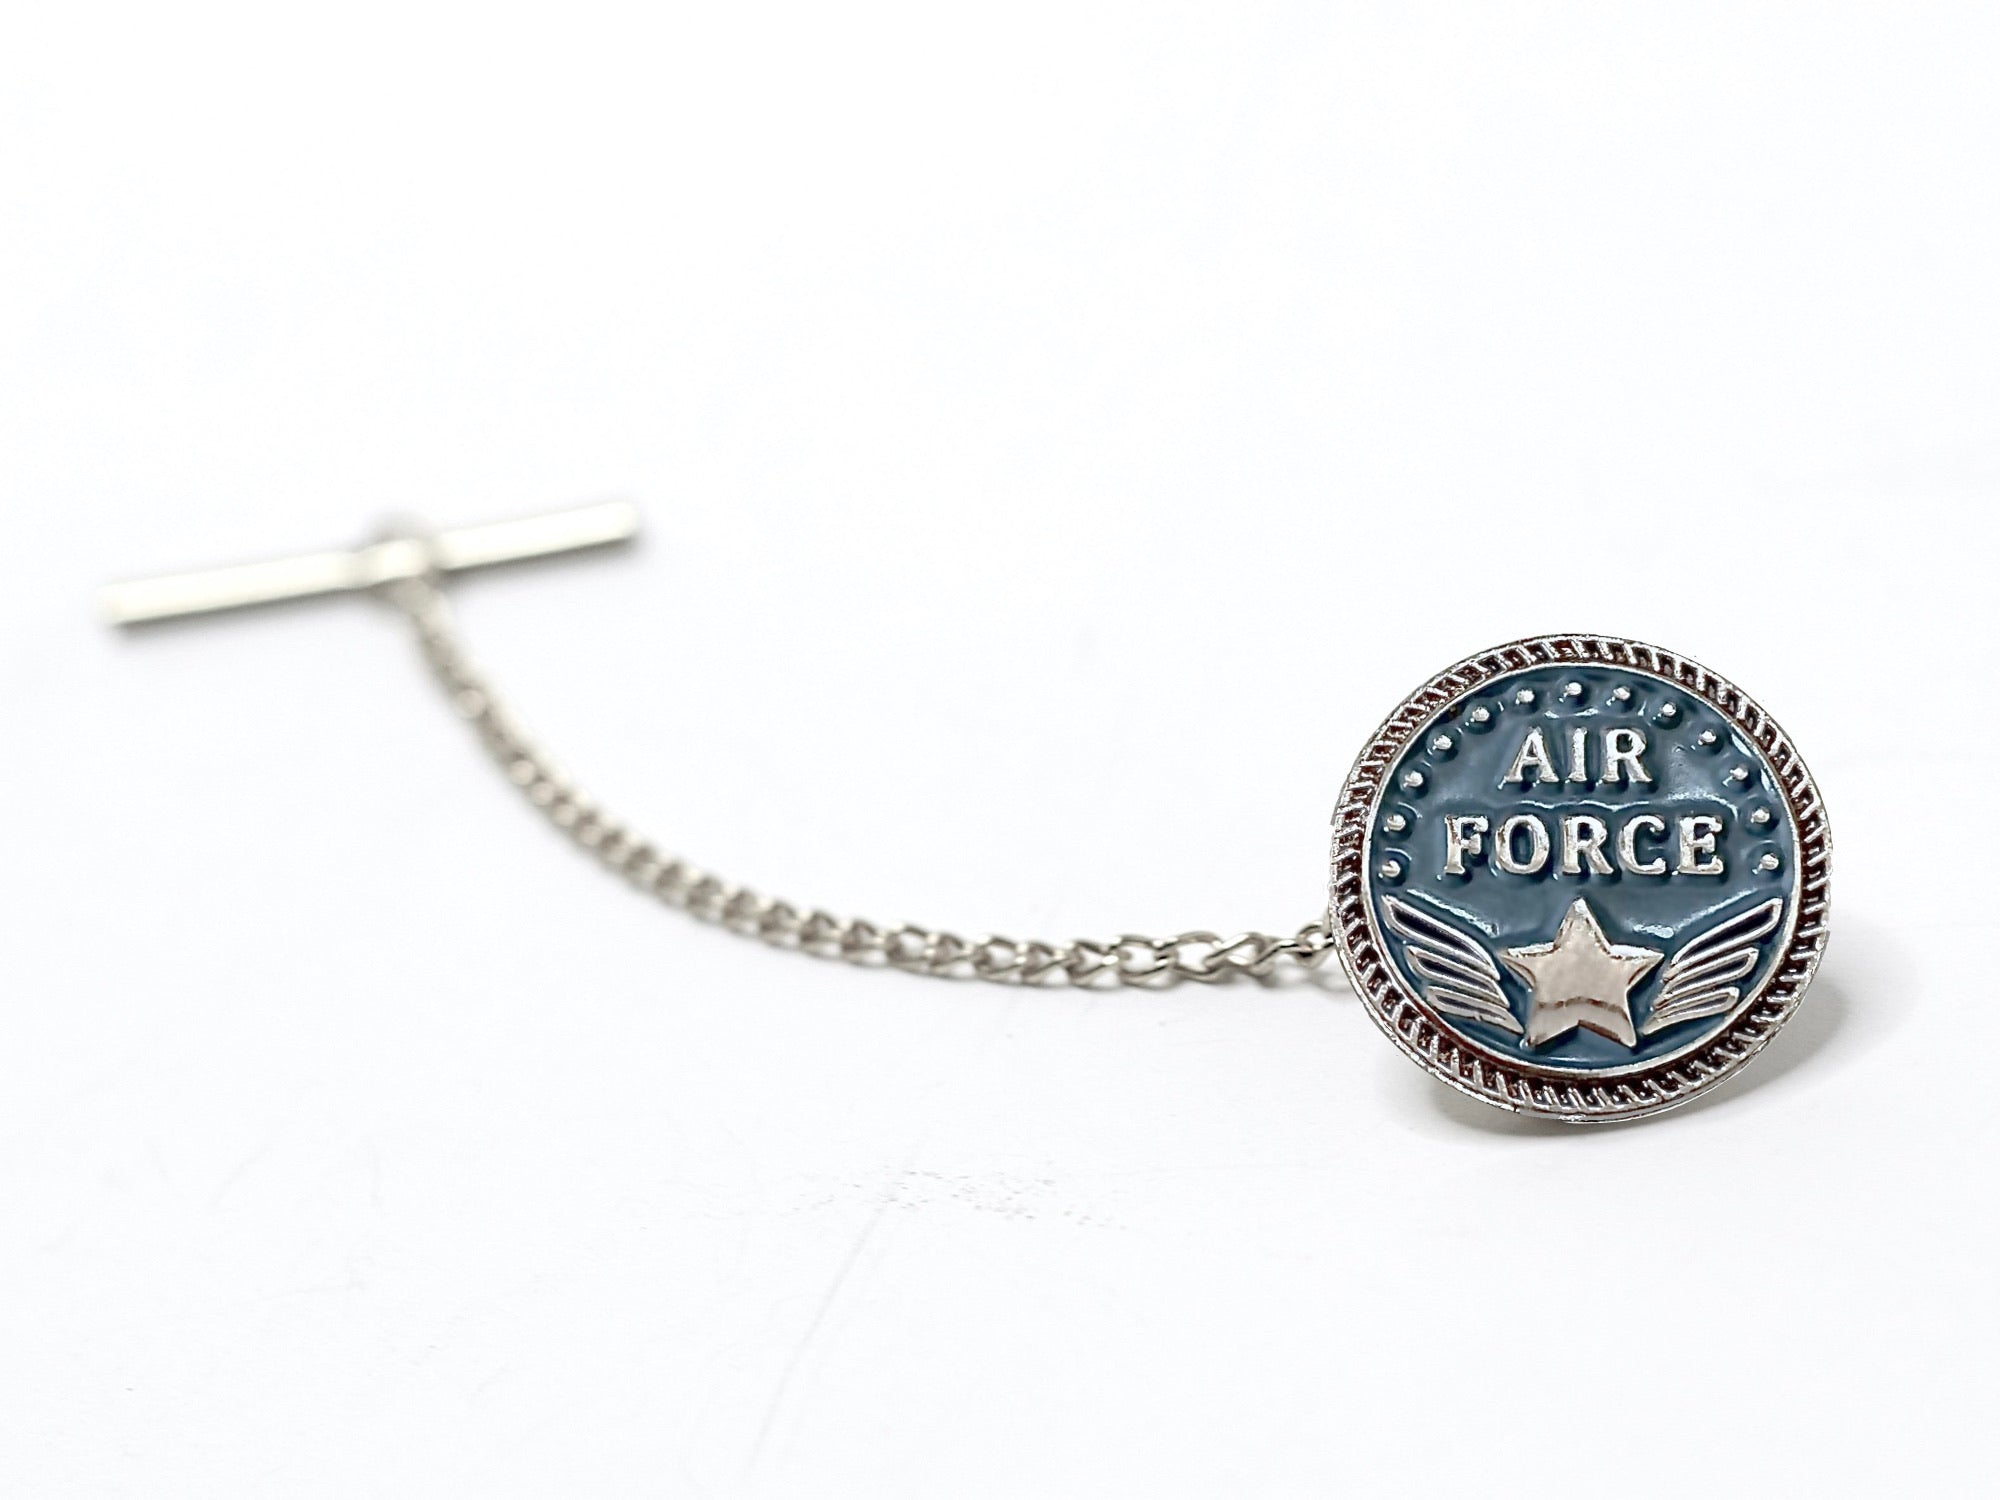 Air Force Silver Tie Tack